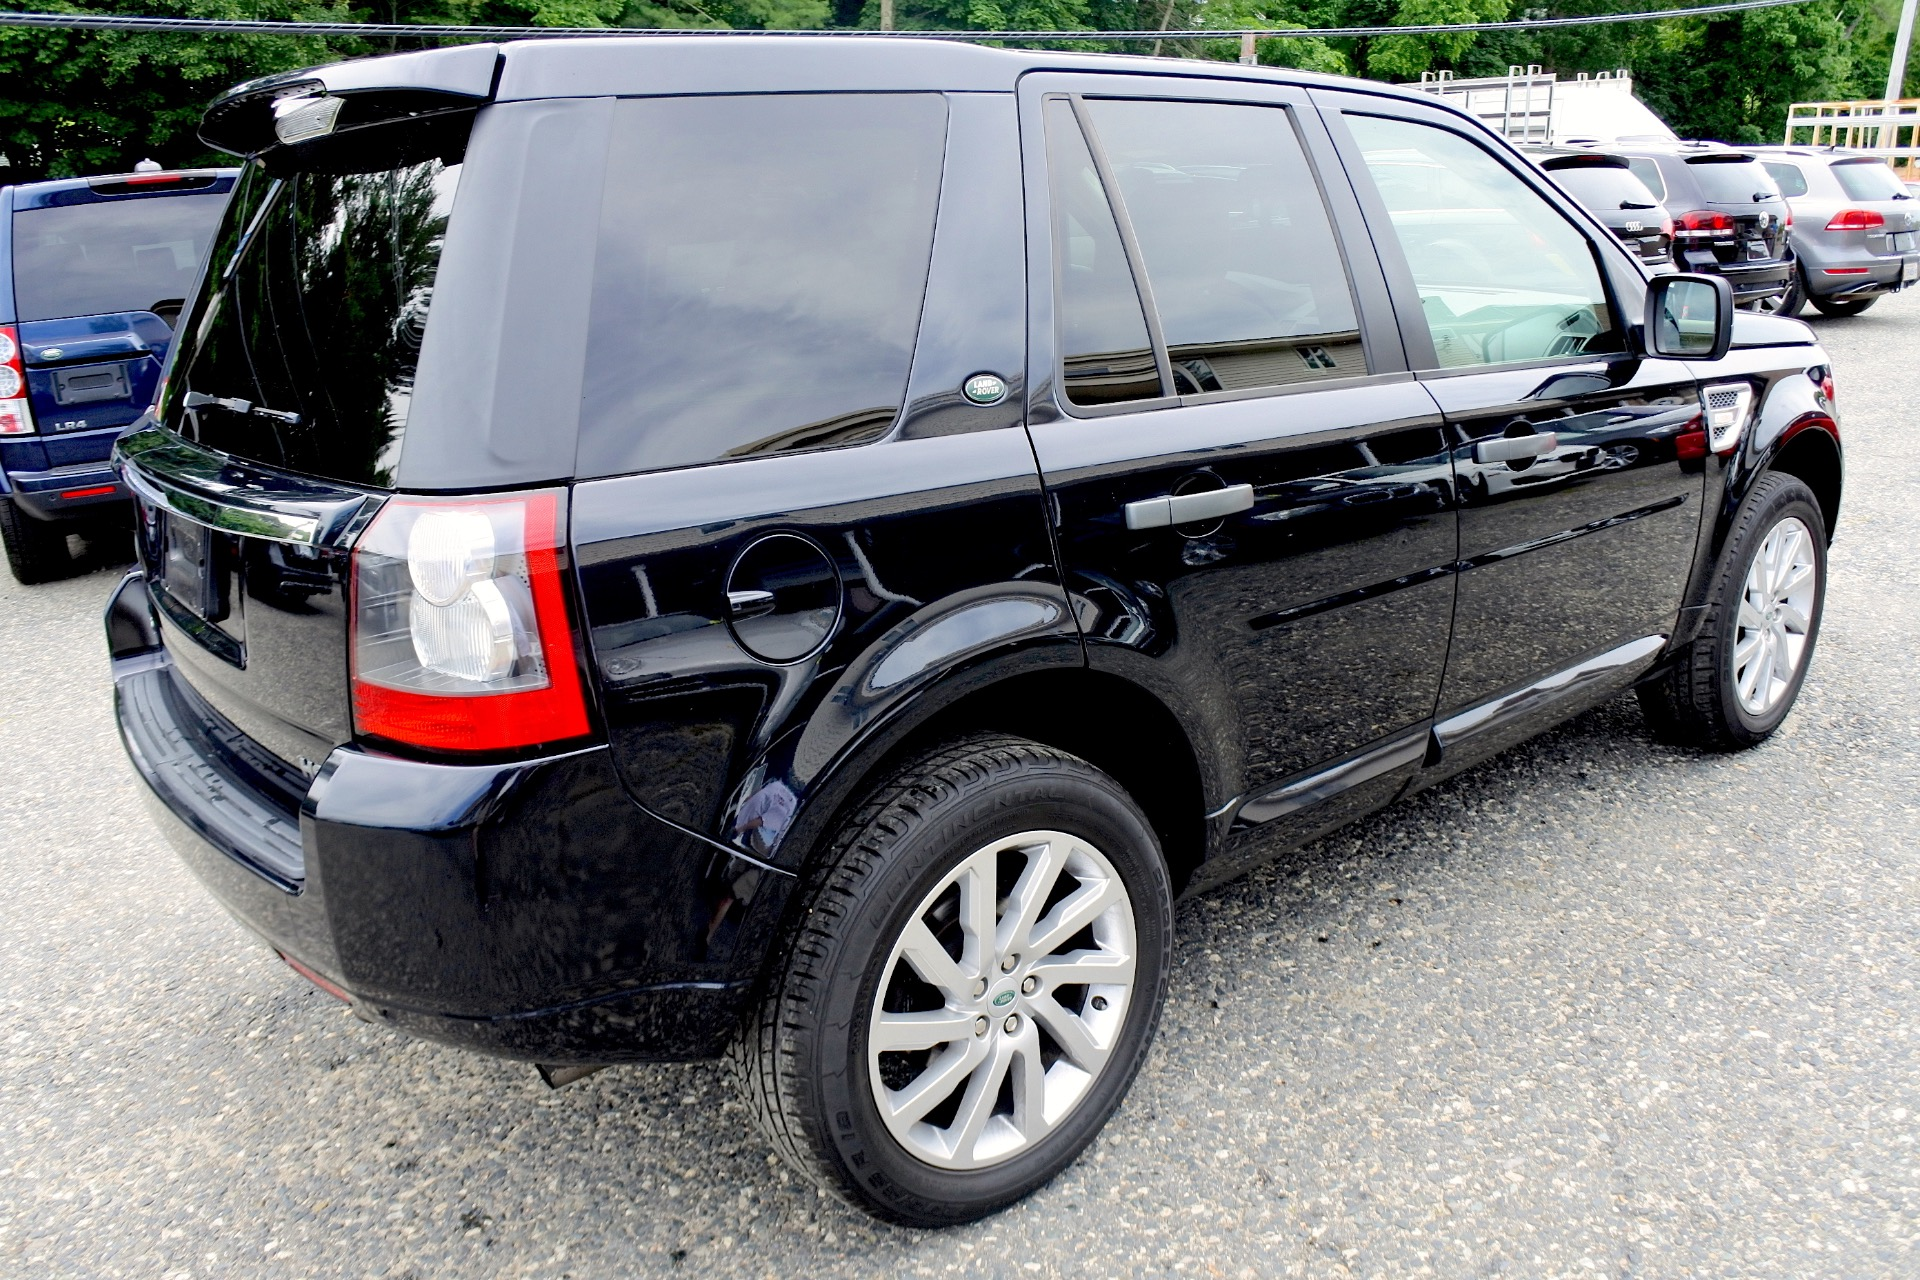 Used 2012 Land Rover Lr2 HSE AWD Used 2012 Land Rover Lr2 HSE AWD for sale  at Metro West Motorcars LLC in Shrewsbury MA 5